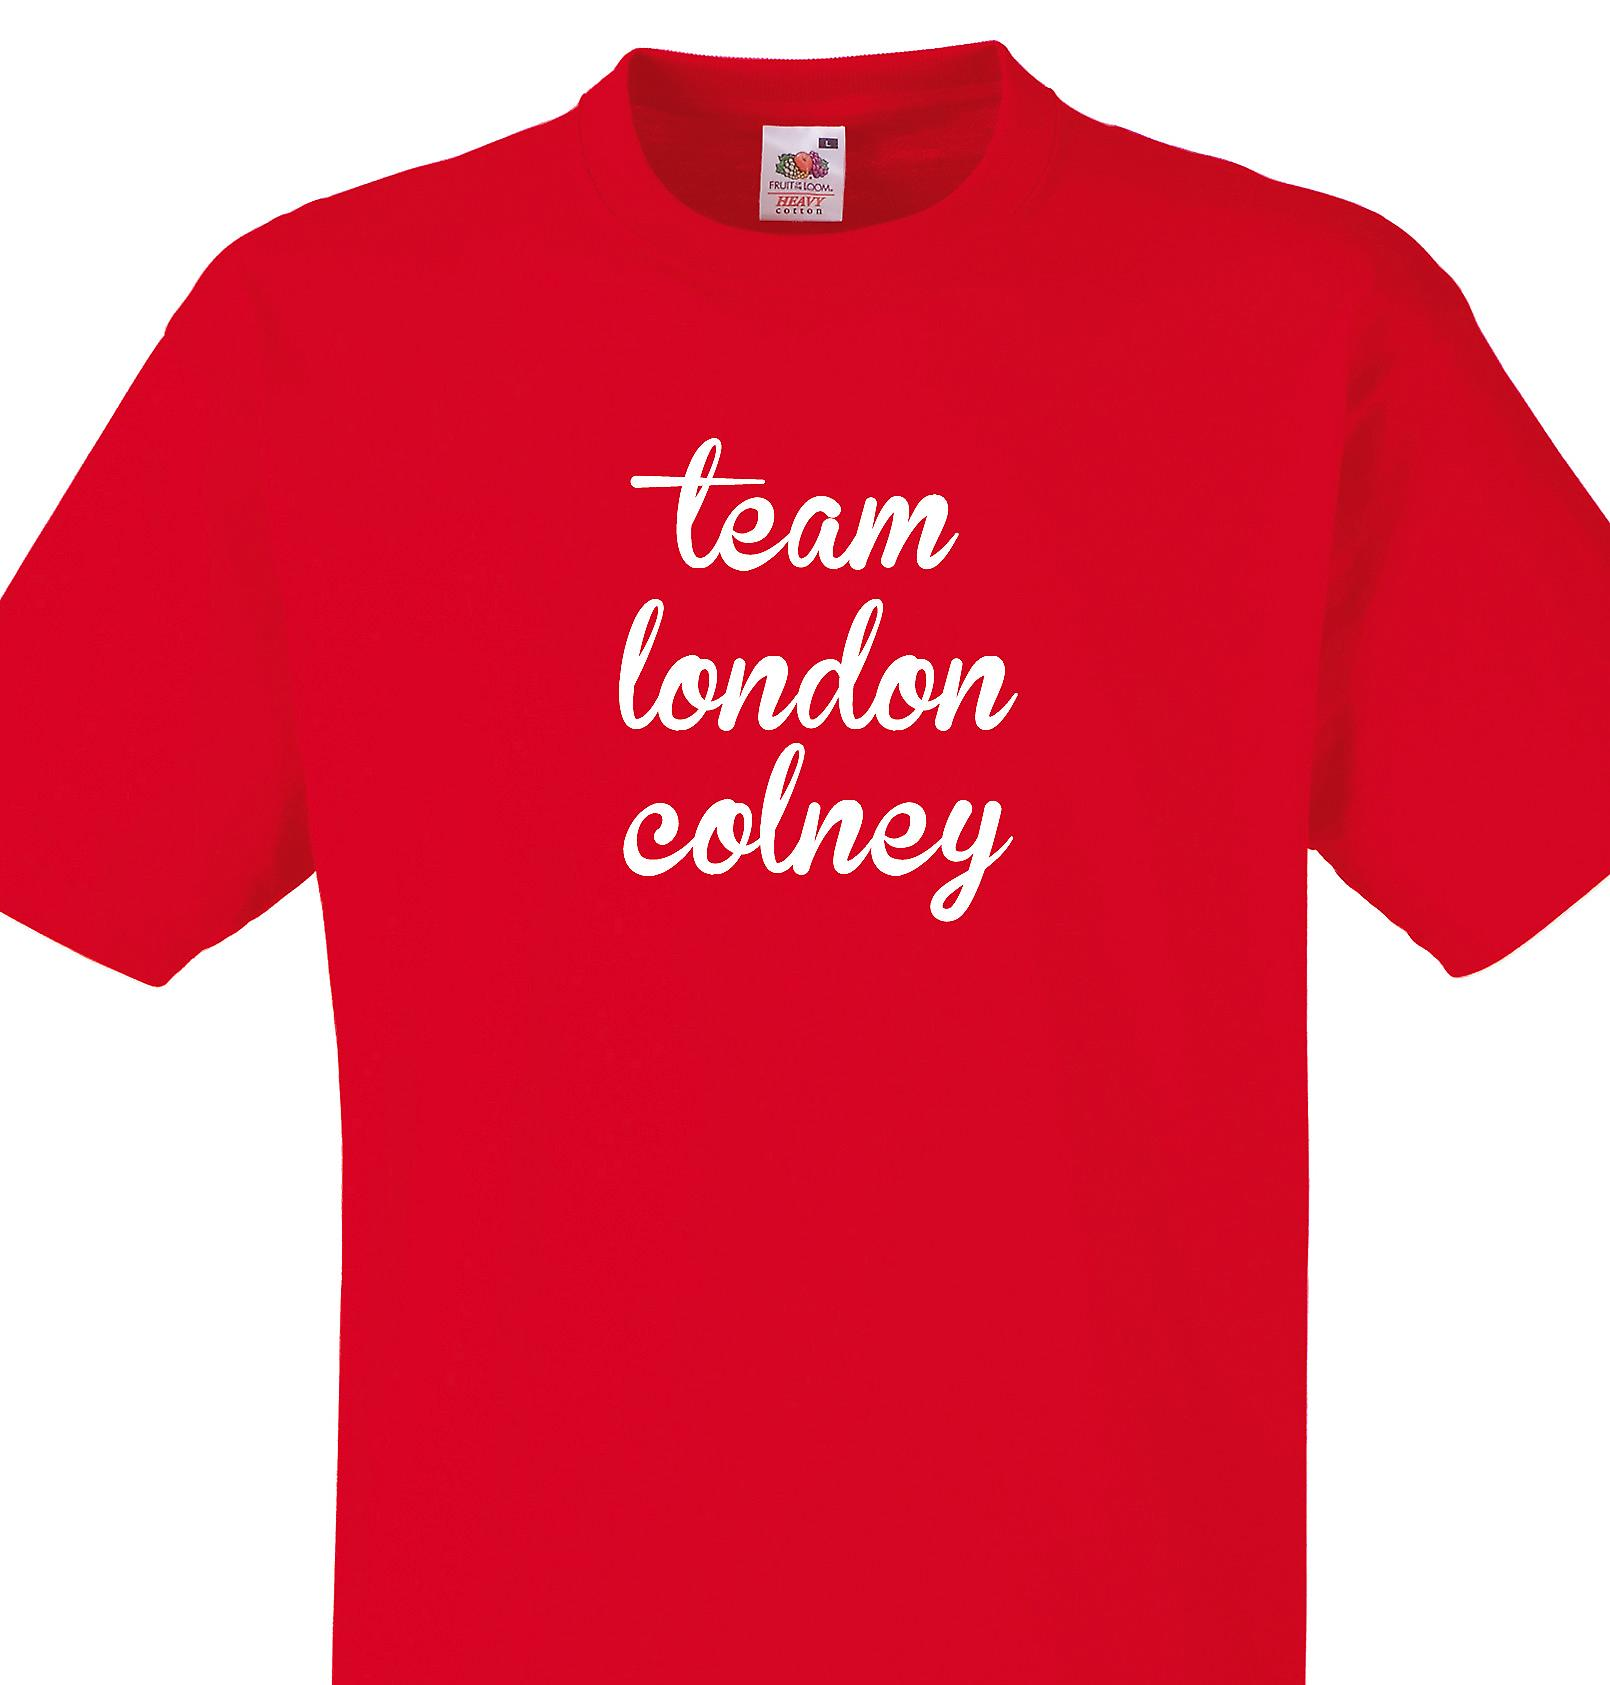 Team London colney Red T shirt